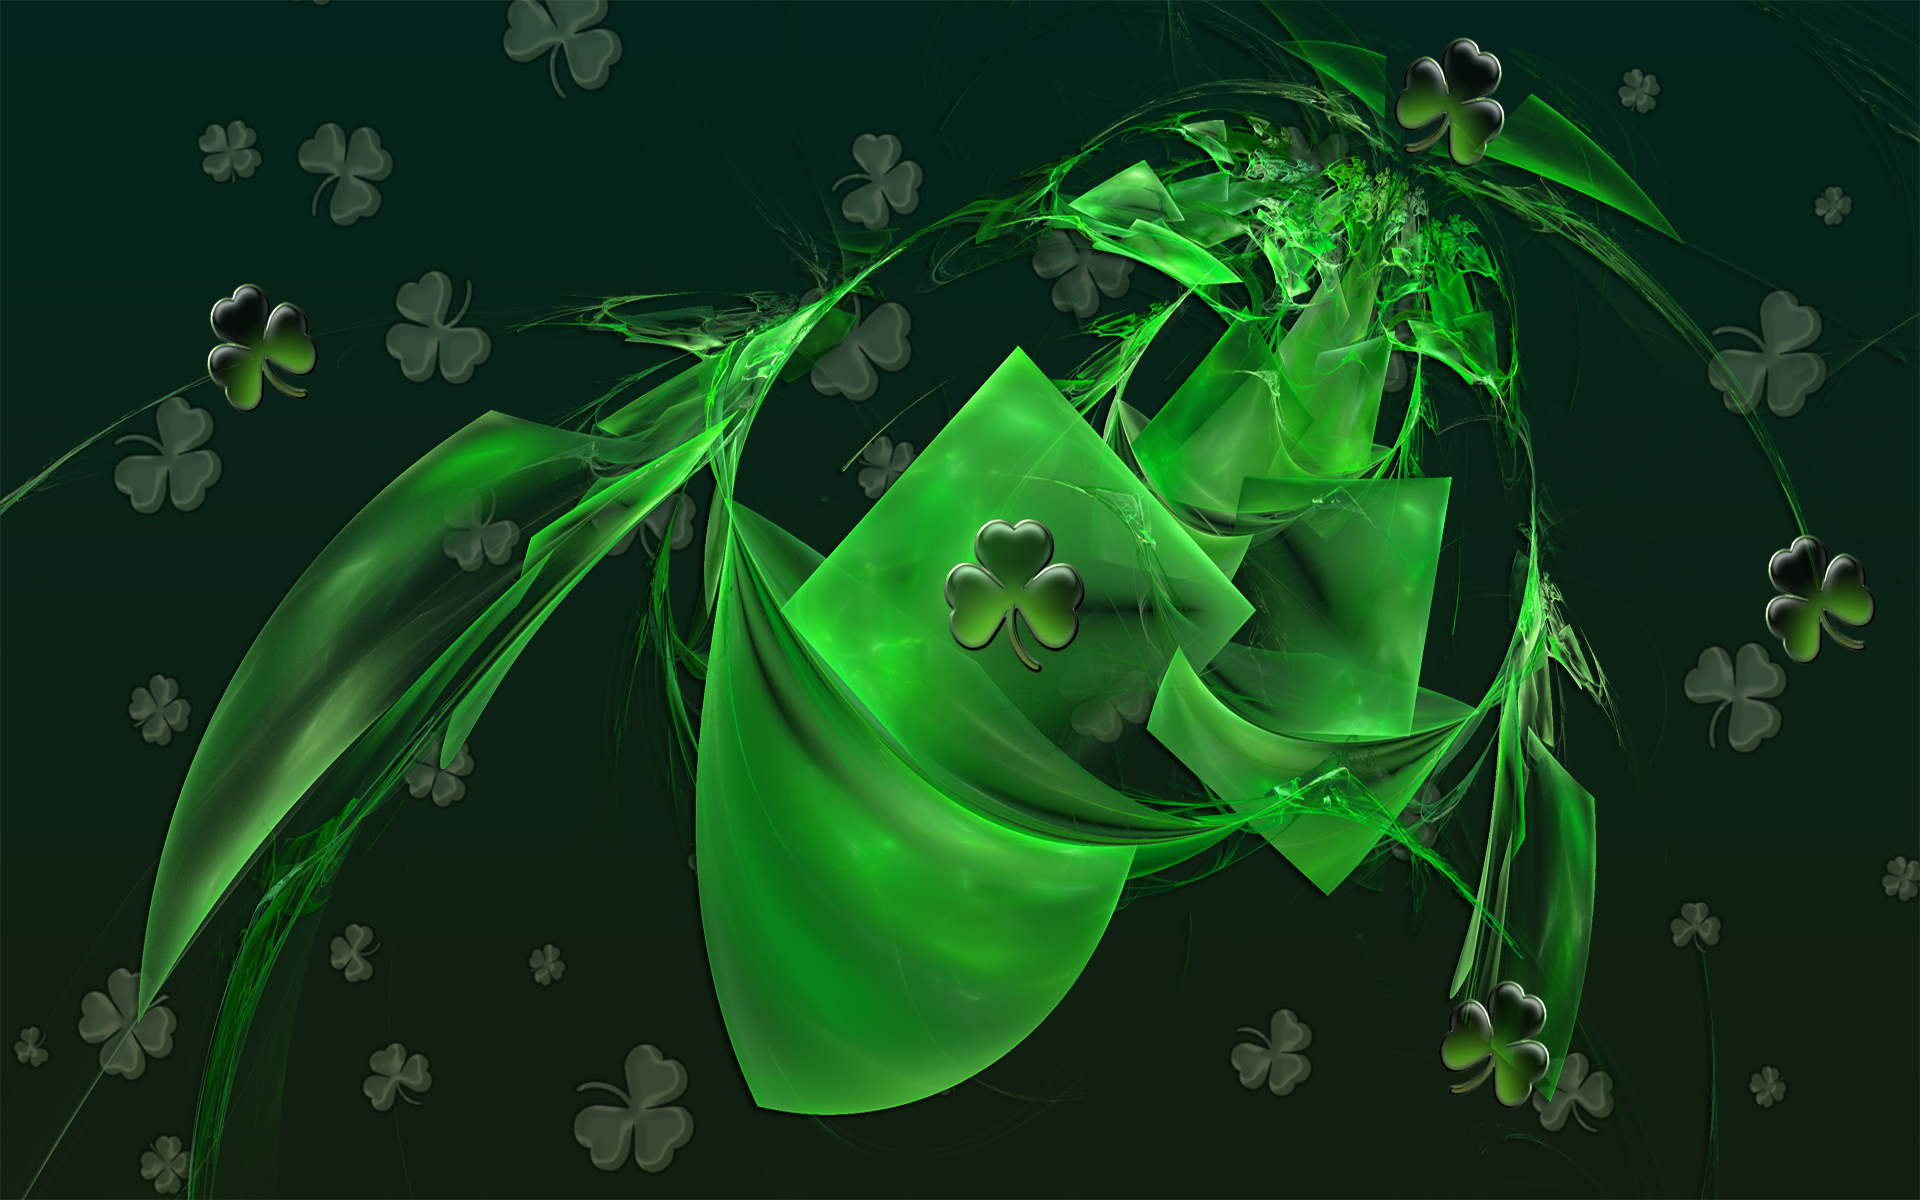 St Patricks Day wallpaper   367950 1920x1200